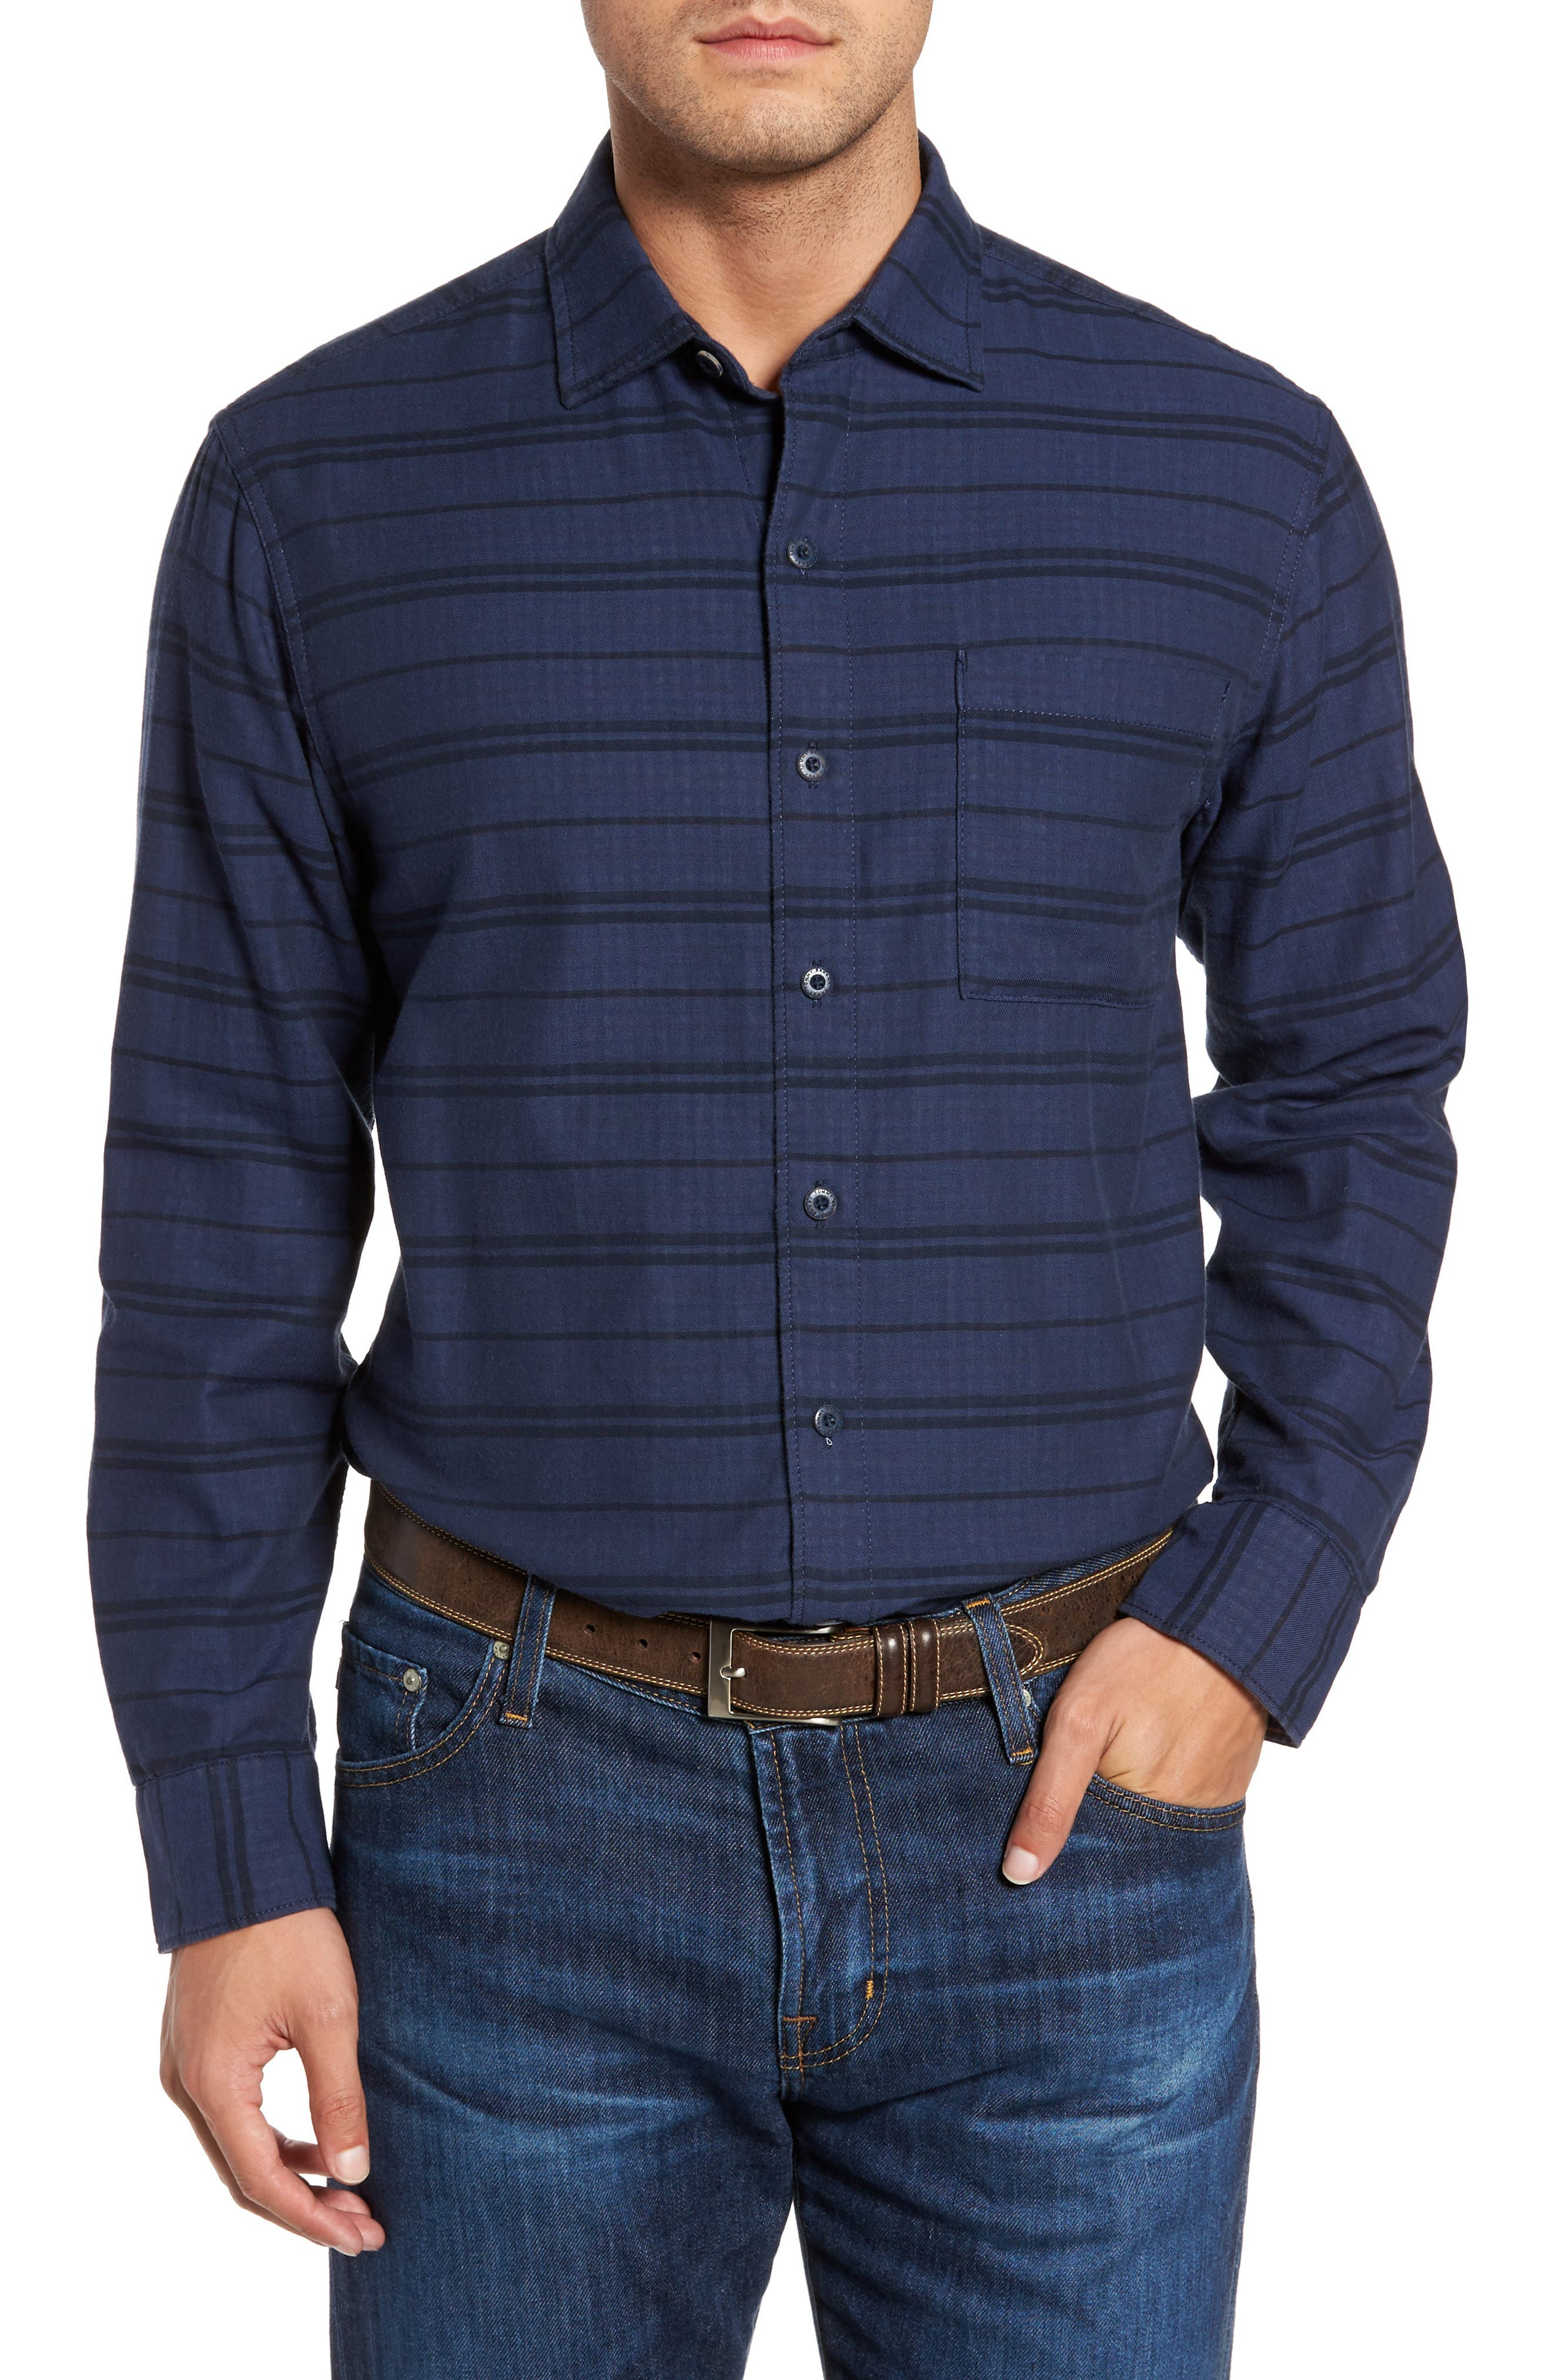 Tan Tan Stripe Standard Fit Sport Shirt,                             Main thumbnail 1, color,